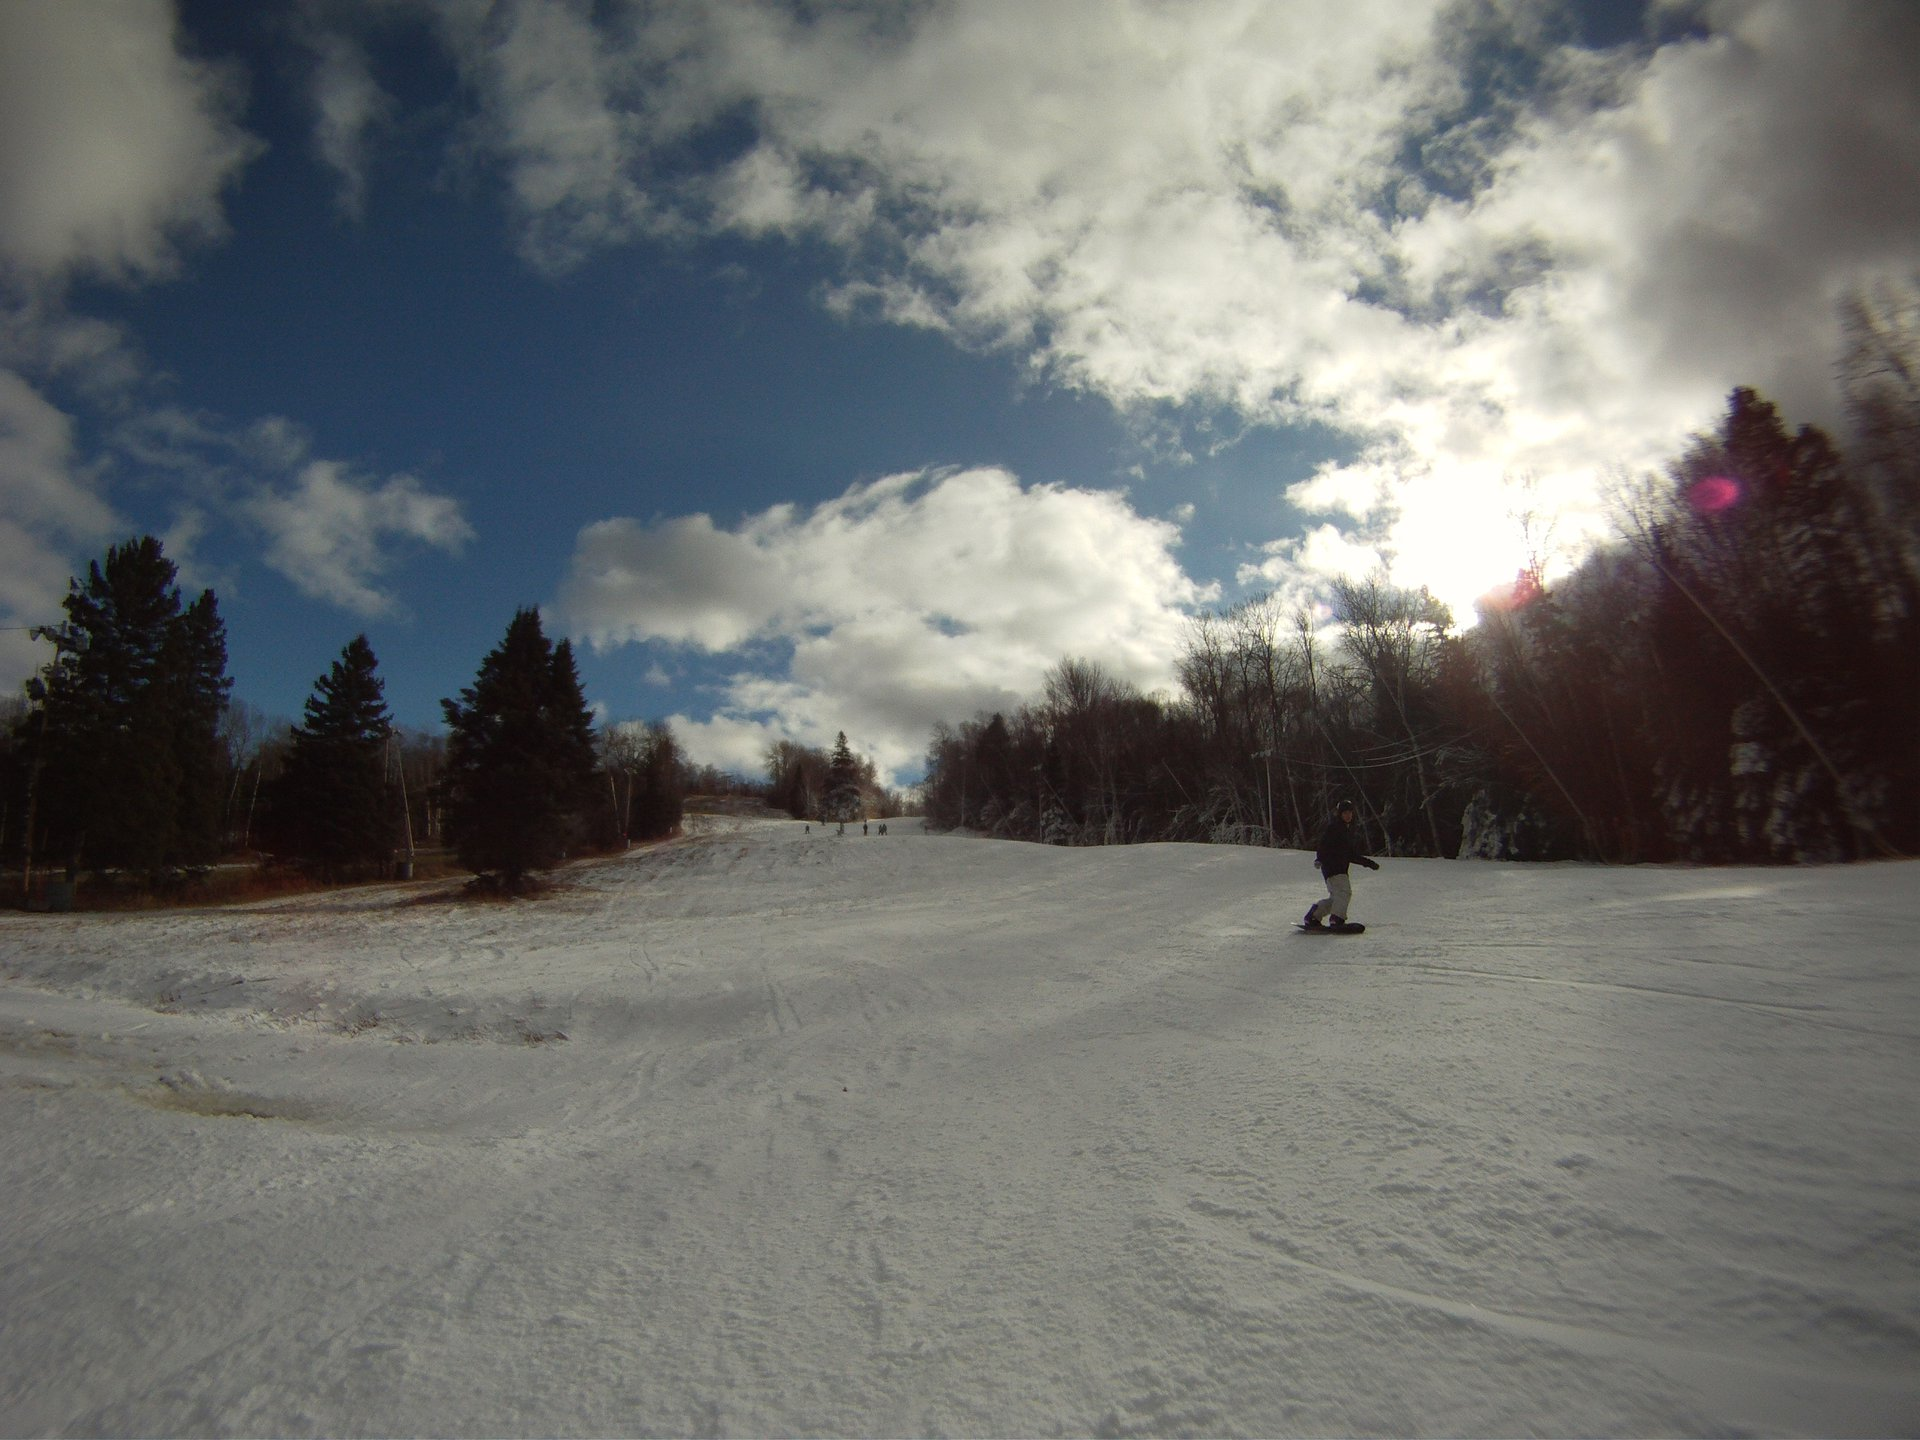 St-sauveur oppening day